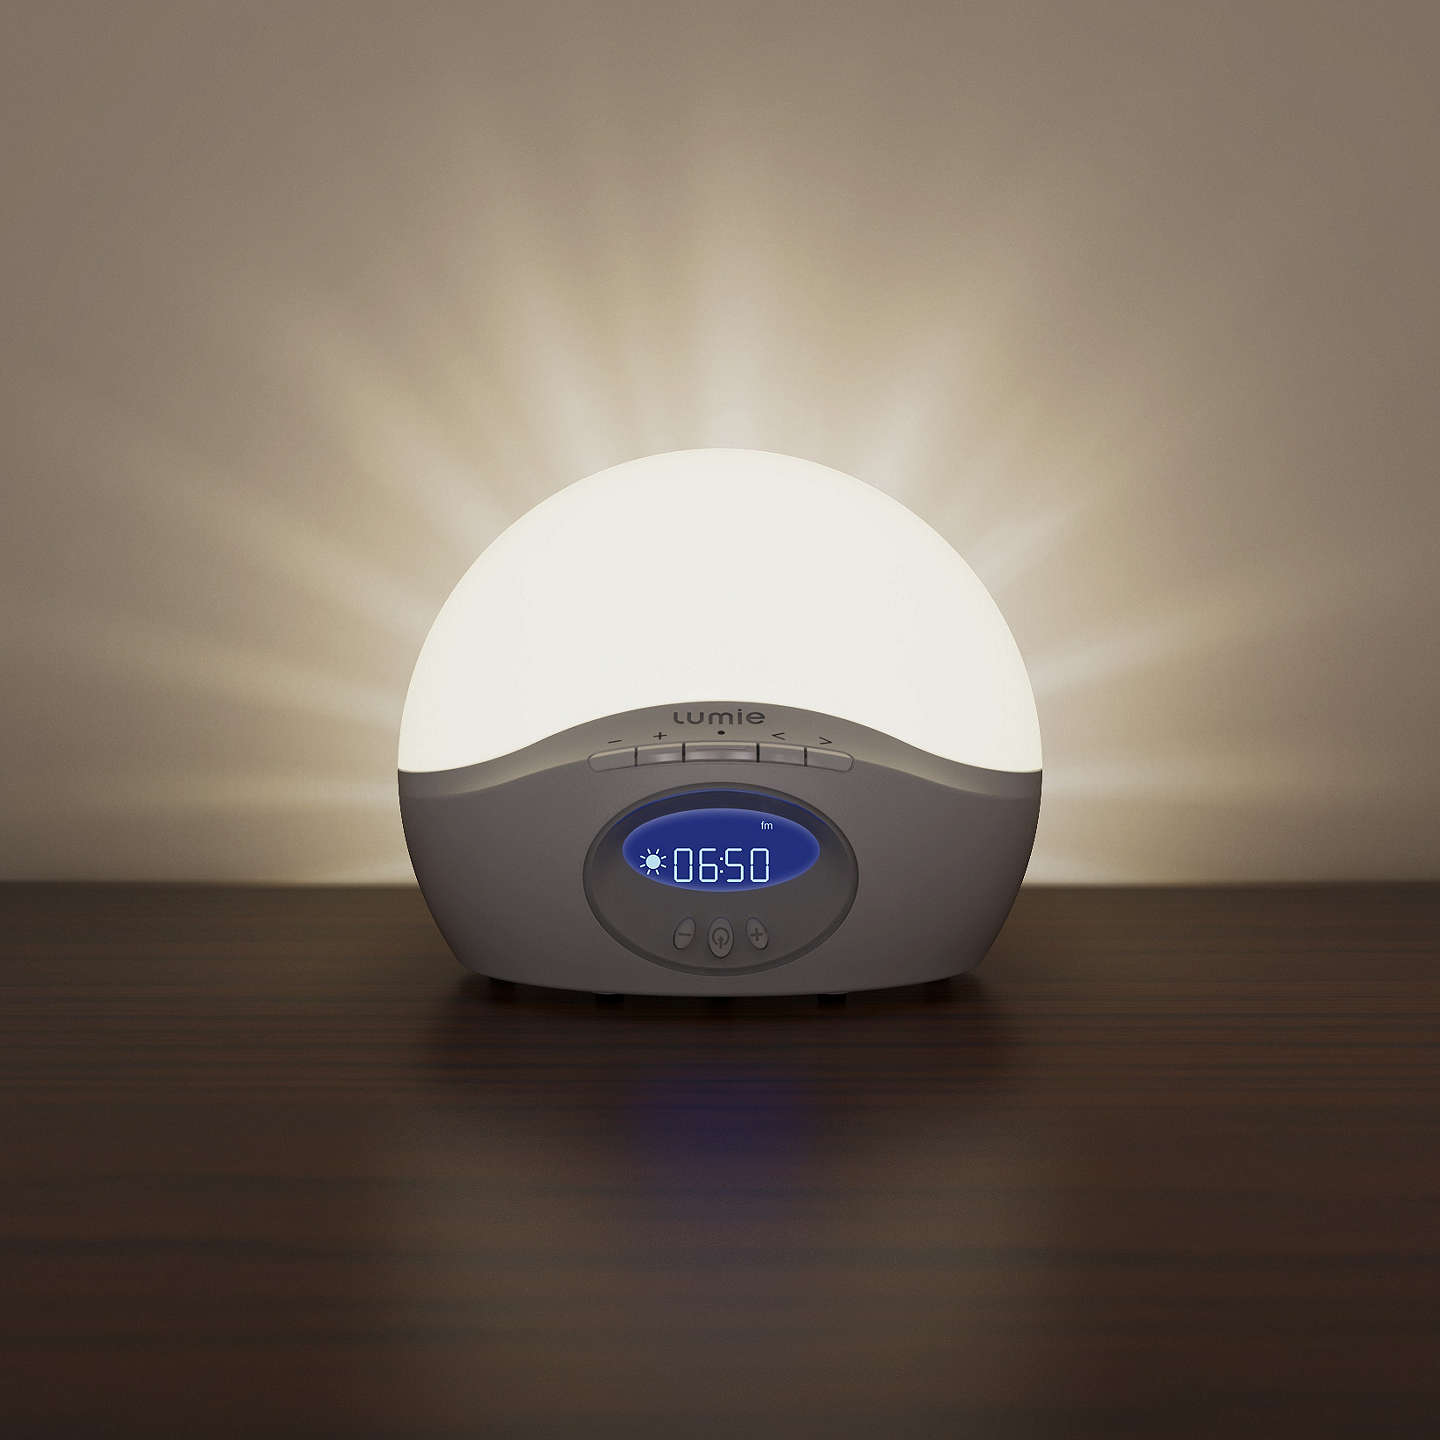 BuyLumie Bodyclock Active 250 Wake Up to Daylight Light Online at johnlewis.com